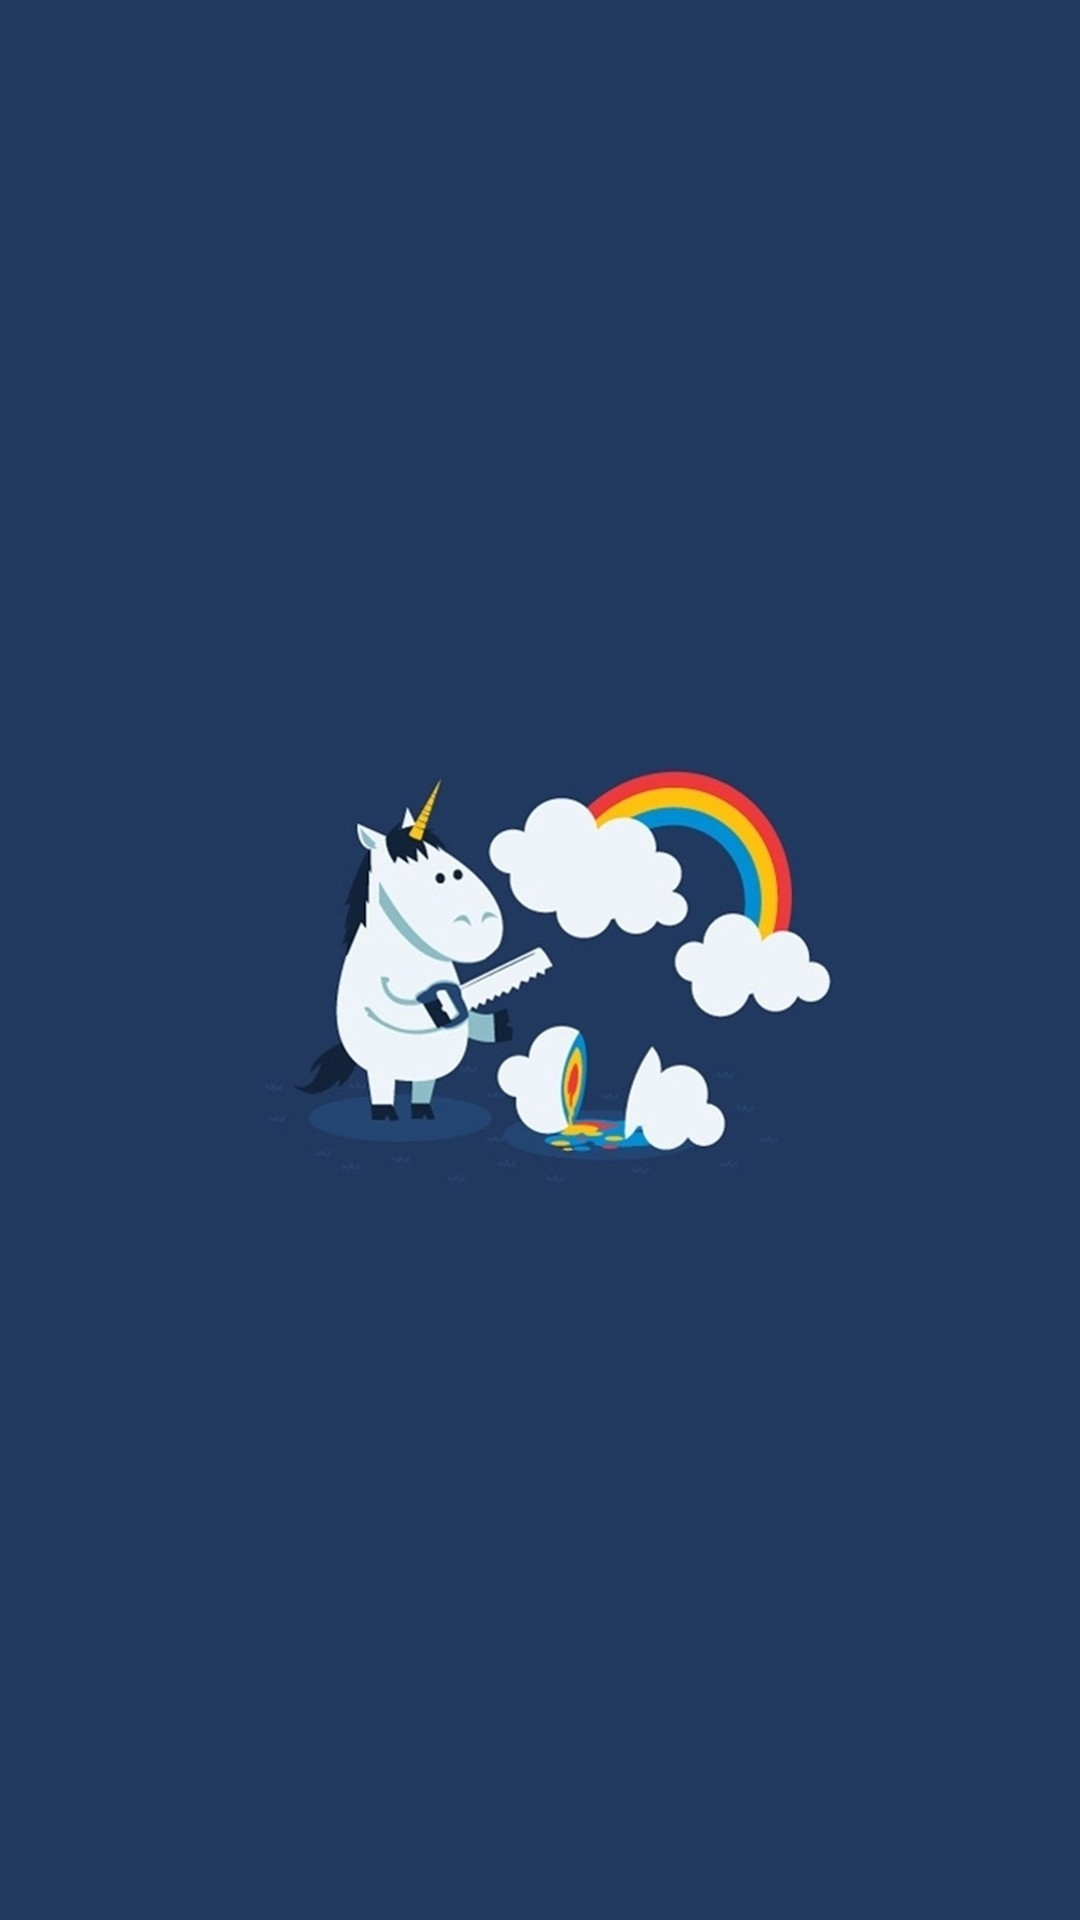 1080x1920 Unicorn Saw Clouds Rainbow Funny iPhone 6 Wallpaper Unicorn Saw.